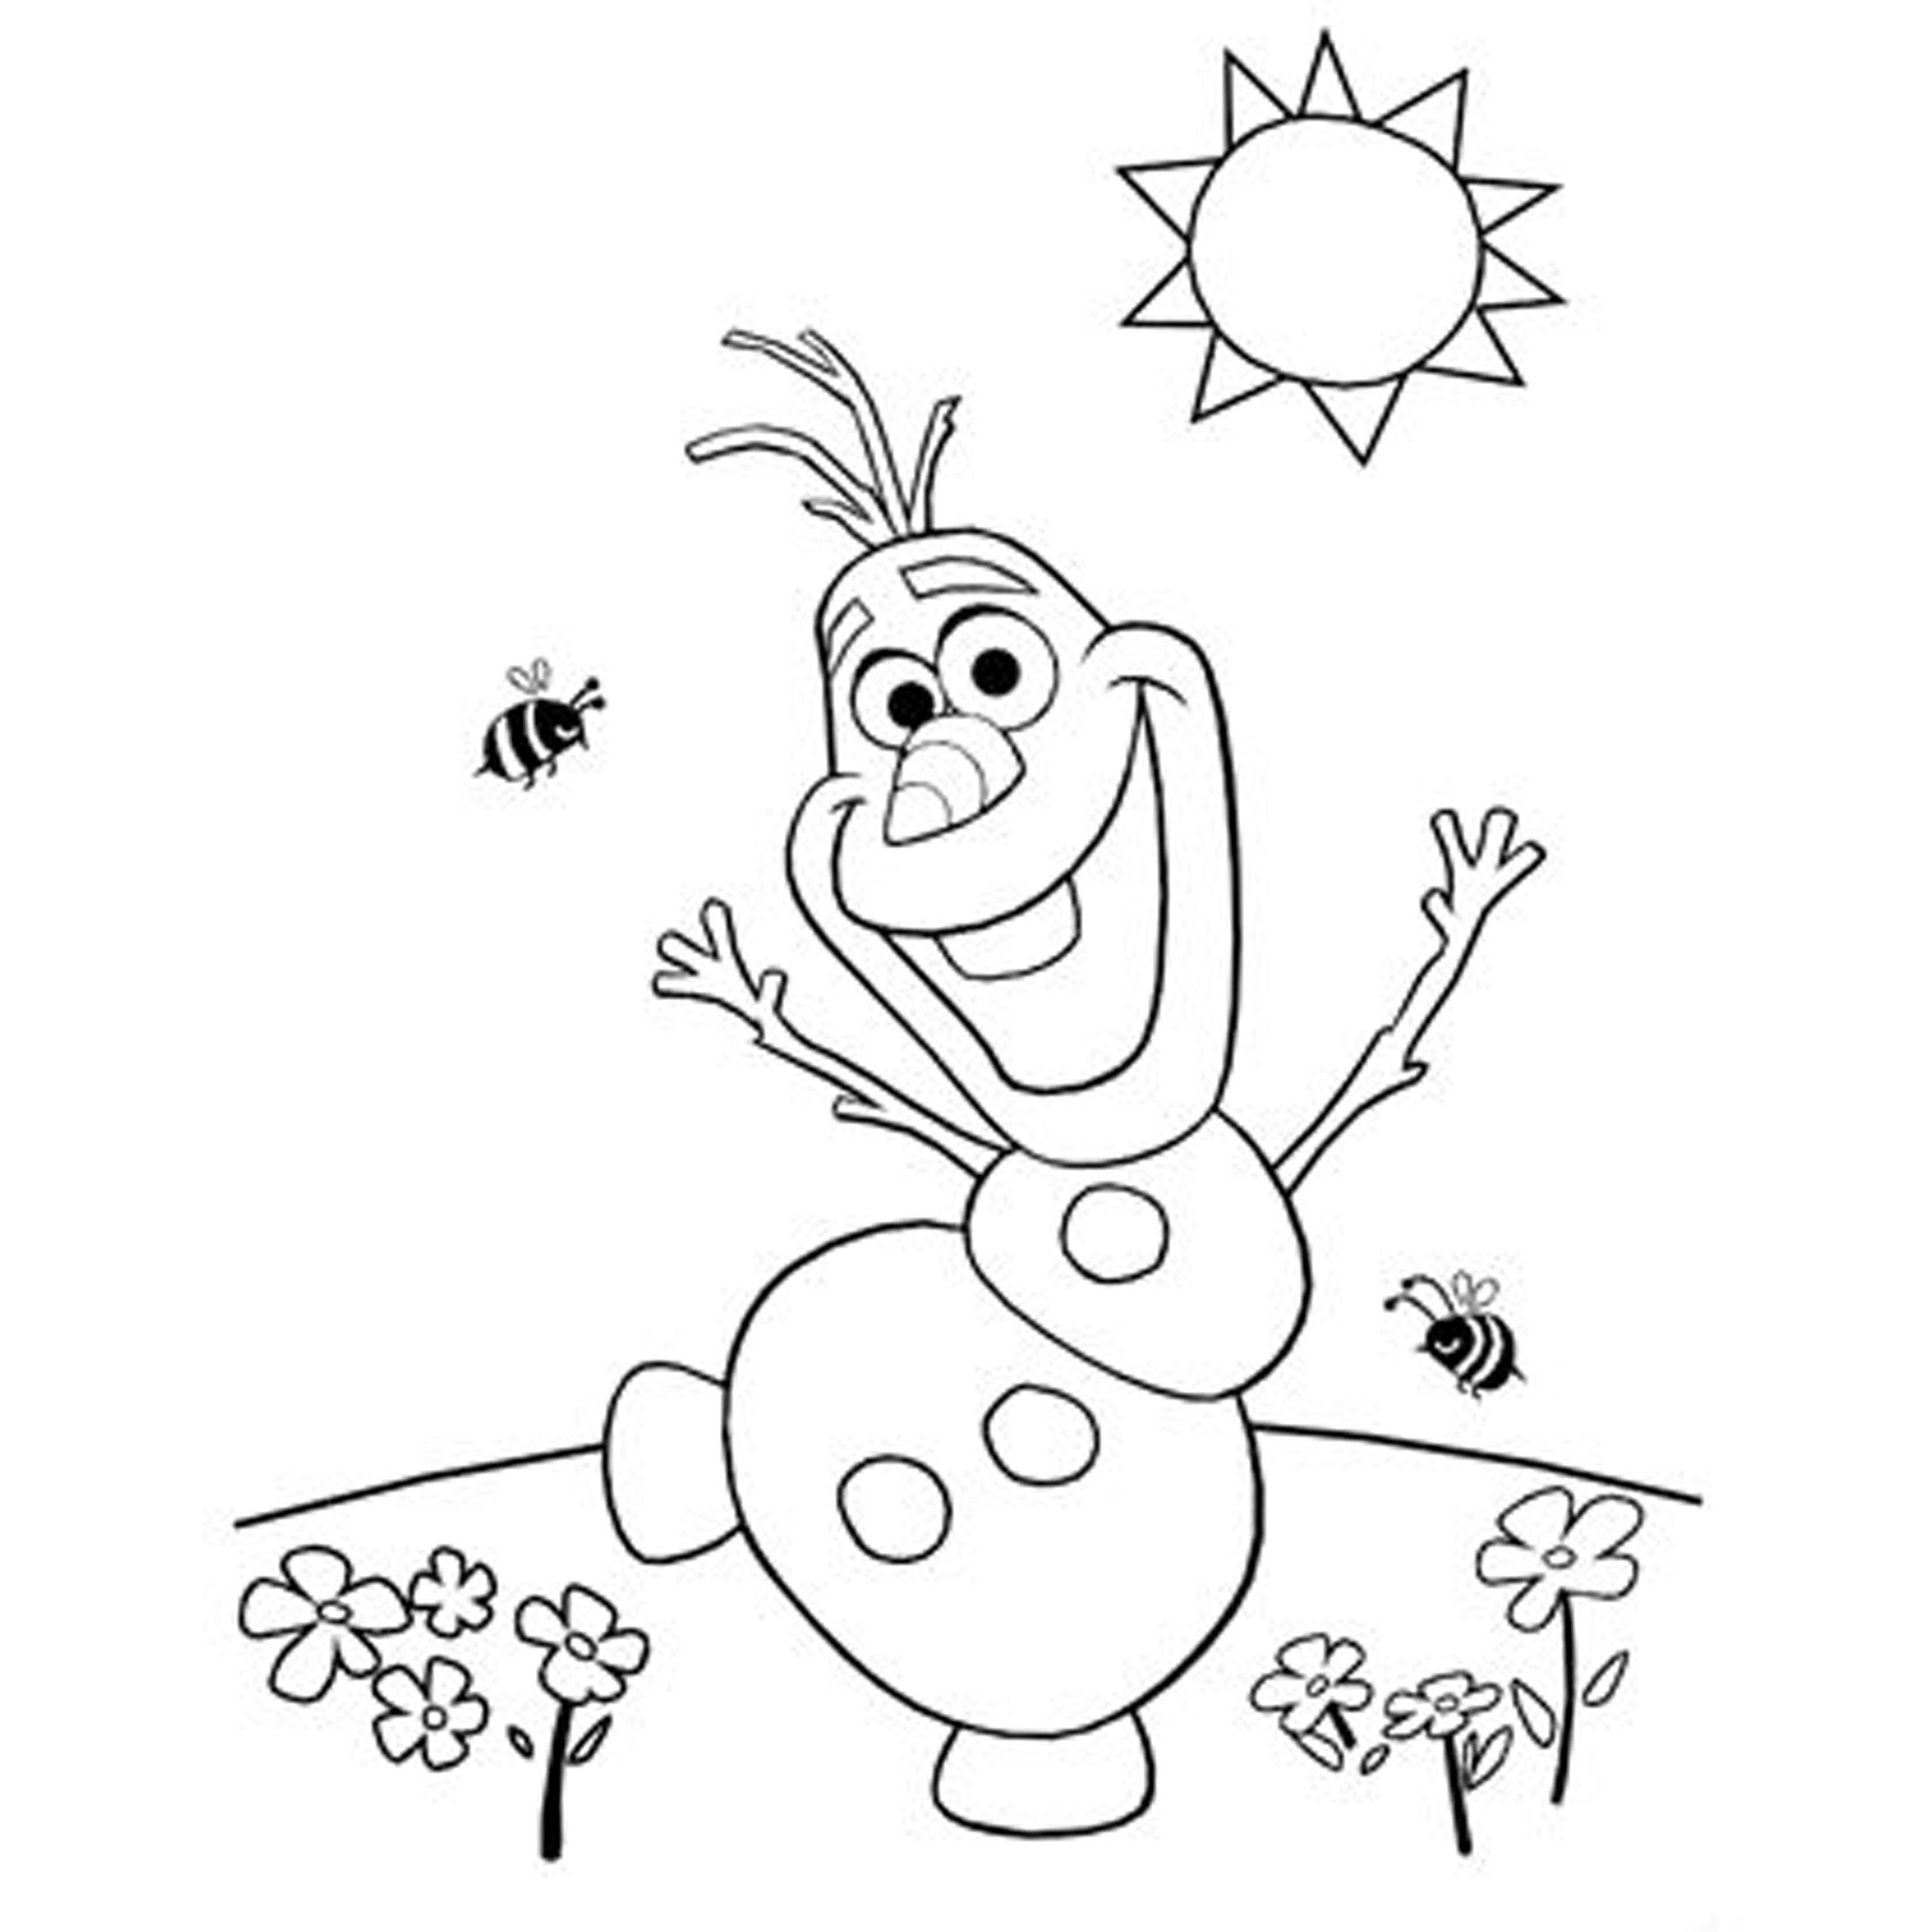 2550x2550 Princess Coloring Pages For Kids Frozen Printable